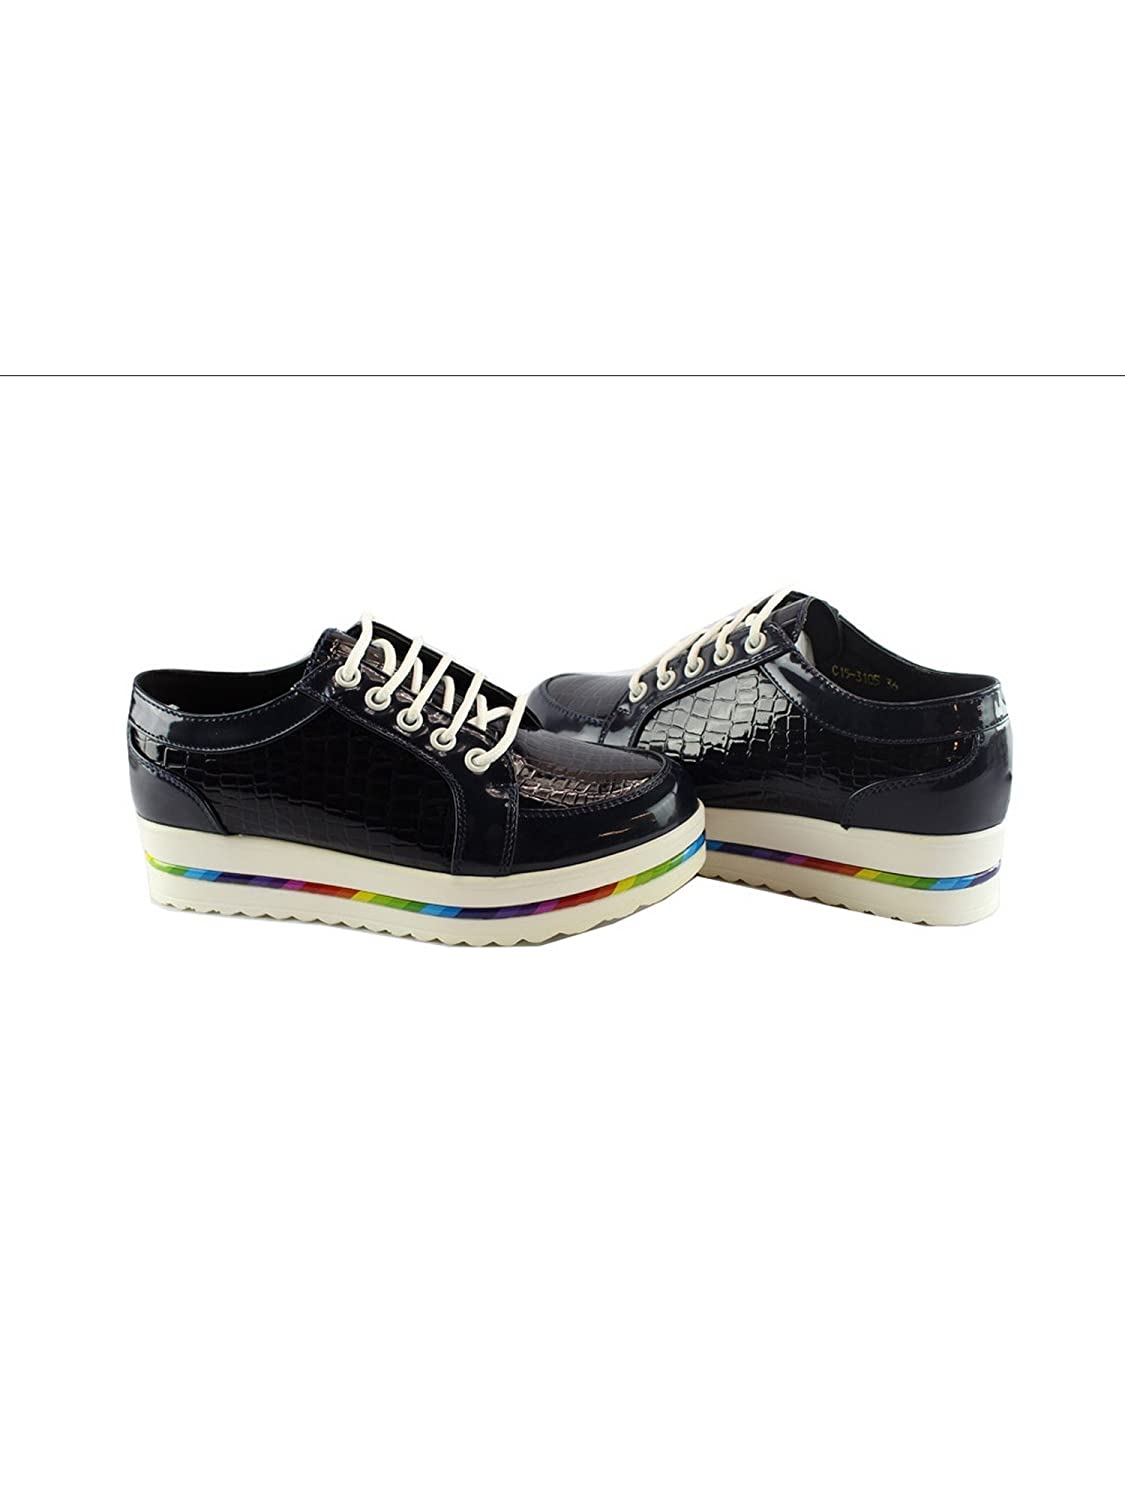 Liyu Adult Blue Lace-Up Panels Multi Color Band Sneakers 6-11 Women